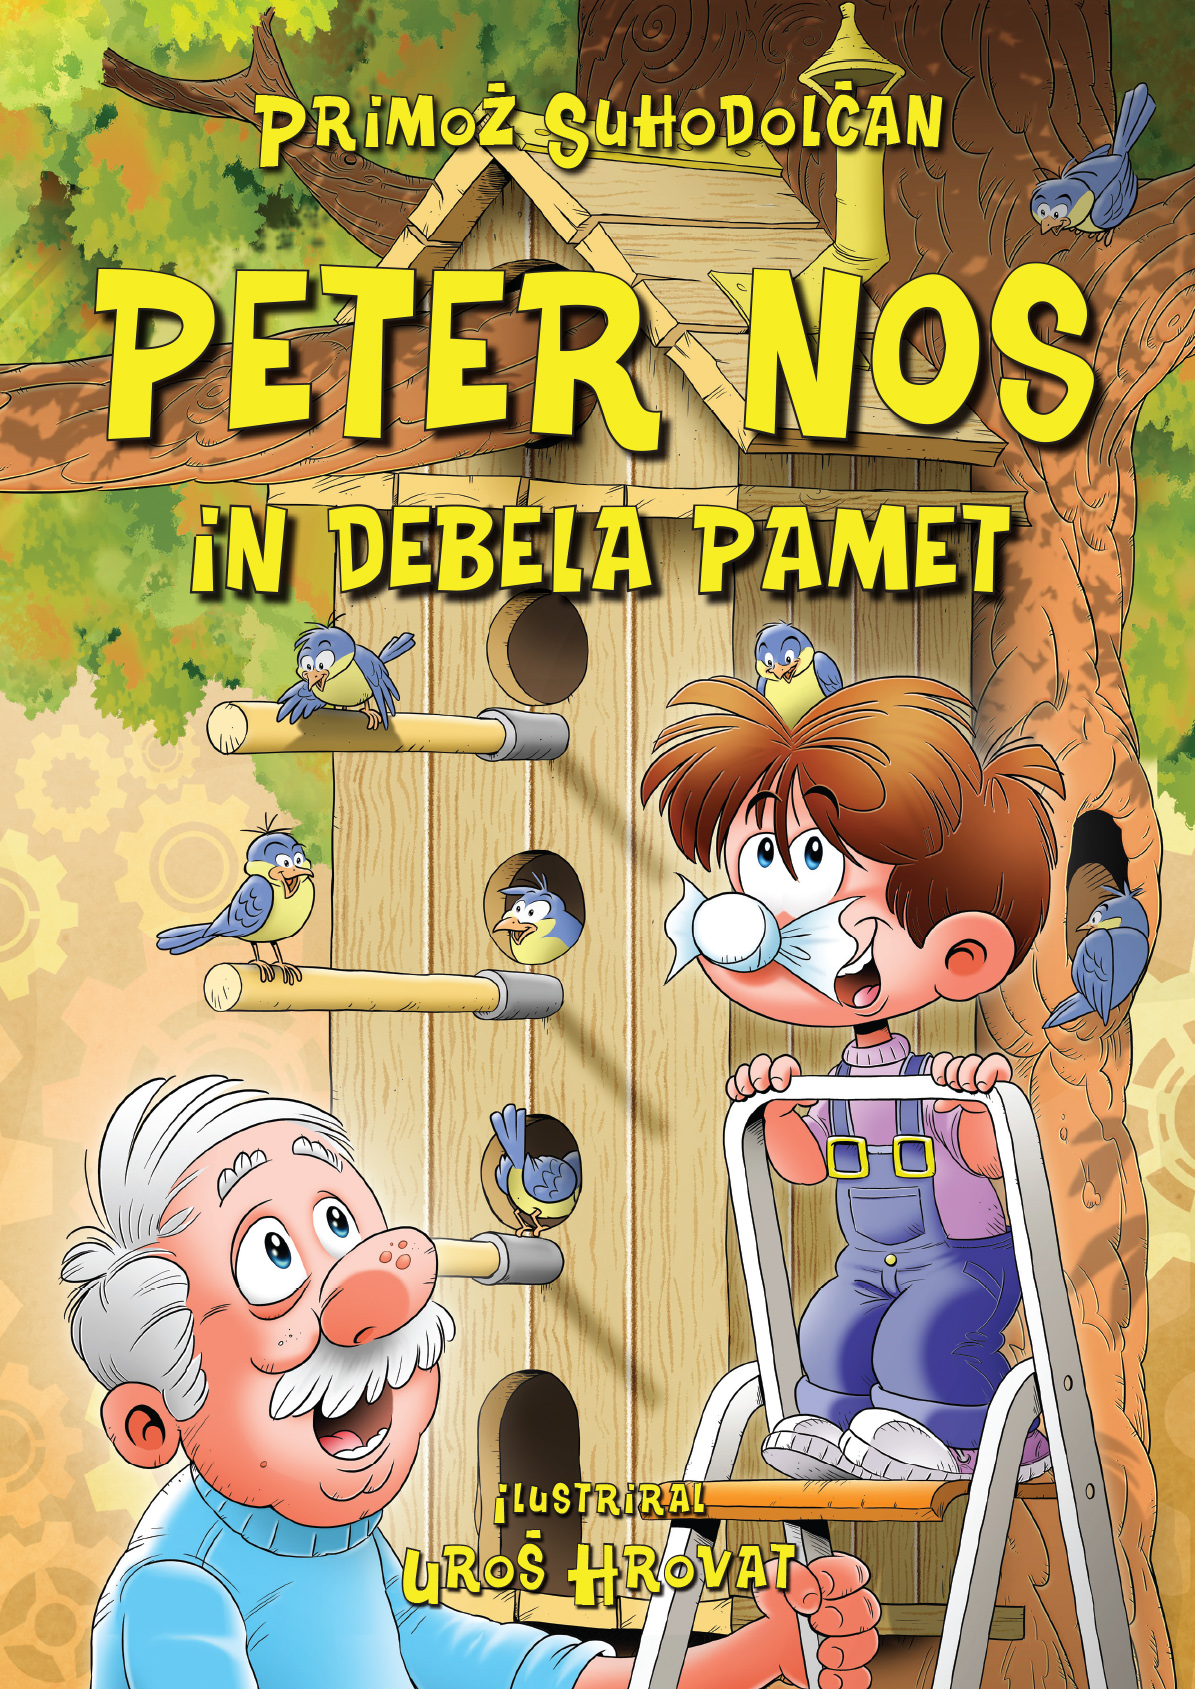 peternos-in-debela-pamet